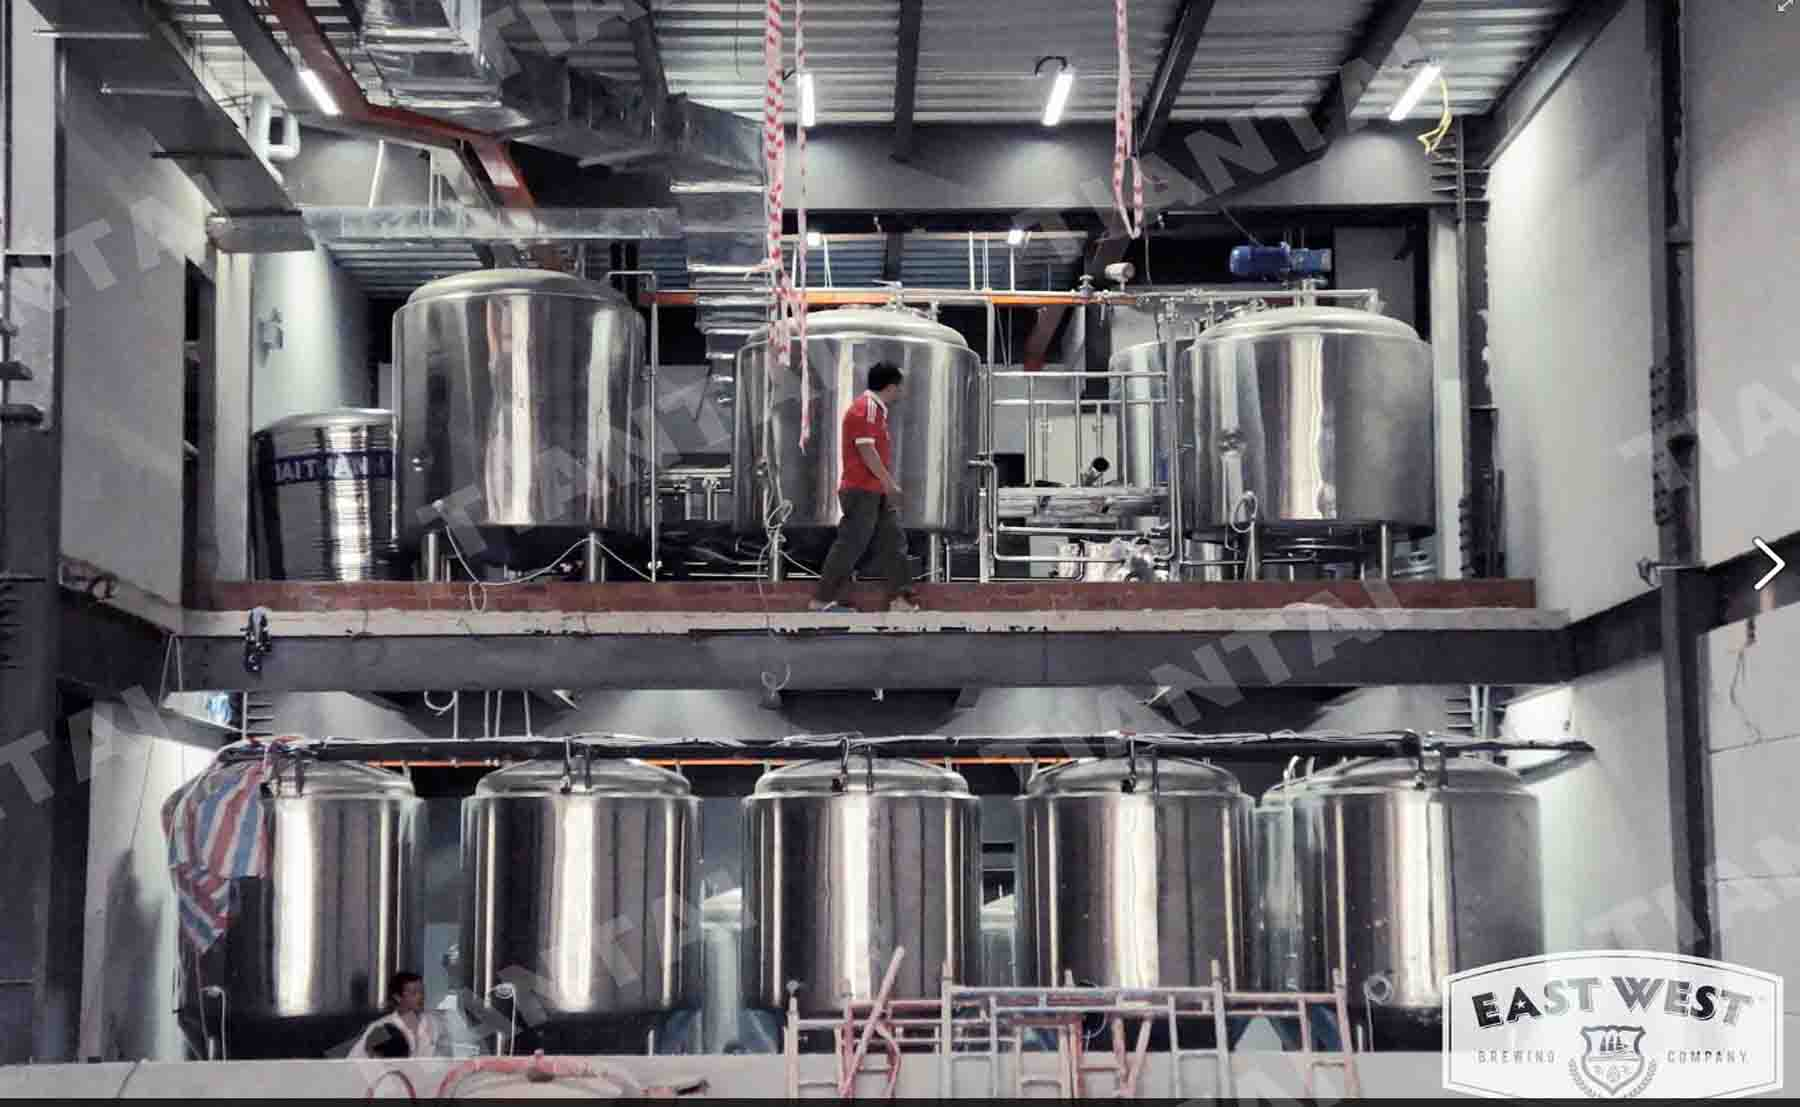 Vietnam 1500L/15HL Brewing Equipment has started to brew beer